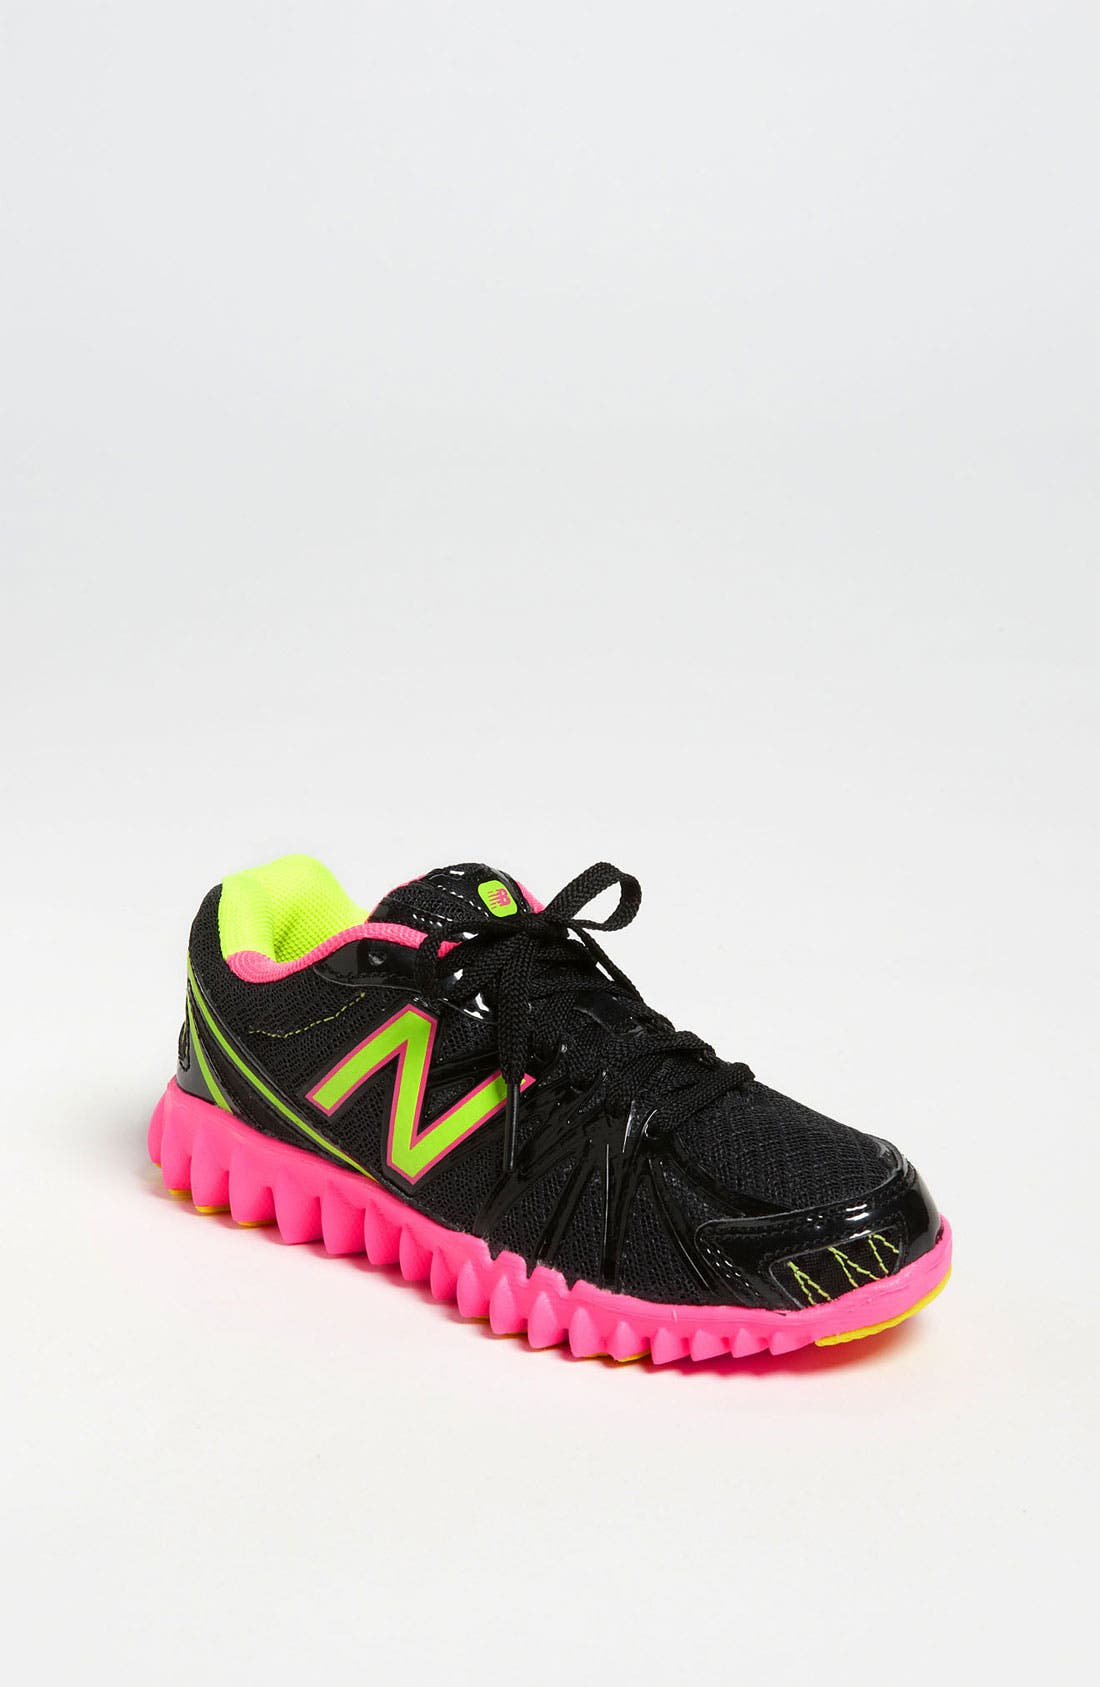 Alternate Image 1 Selected - New Balance 'Gruve 2750' Running Shoe (Toddler, Little Kid & Big Kid)